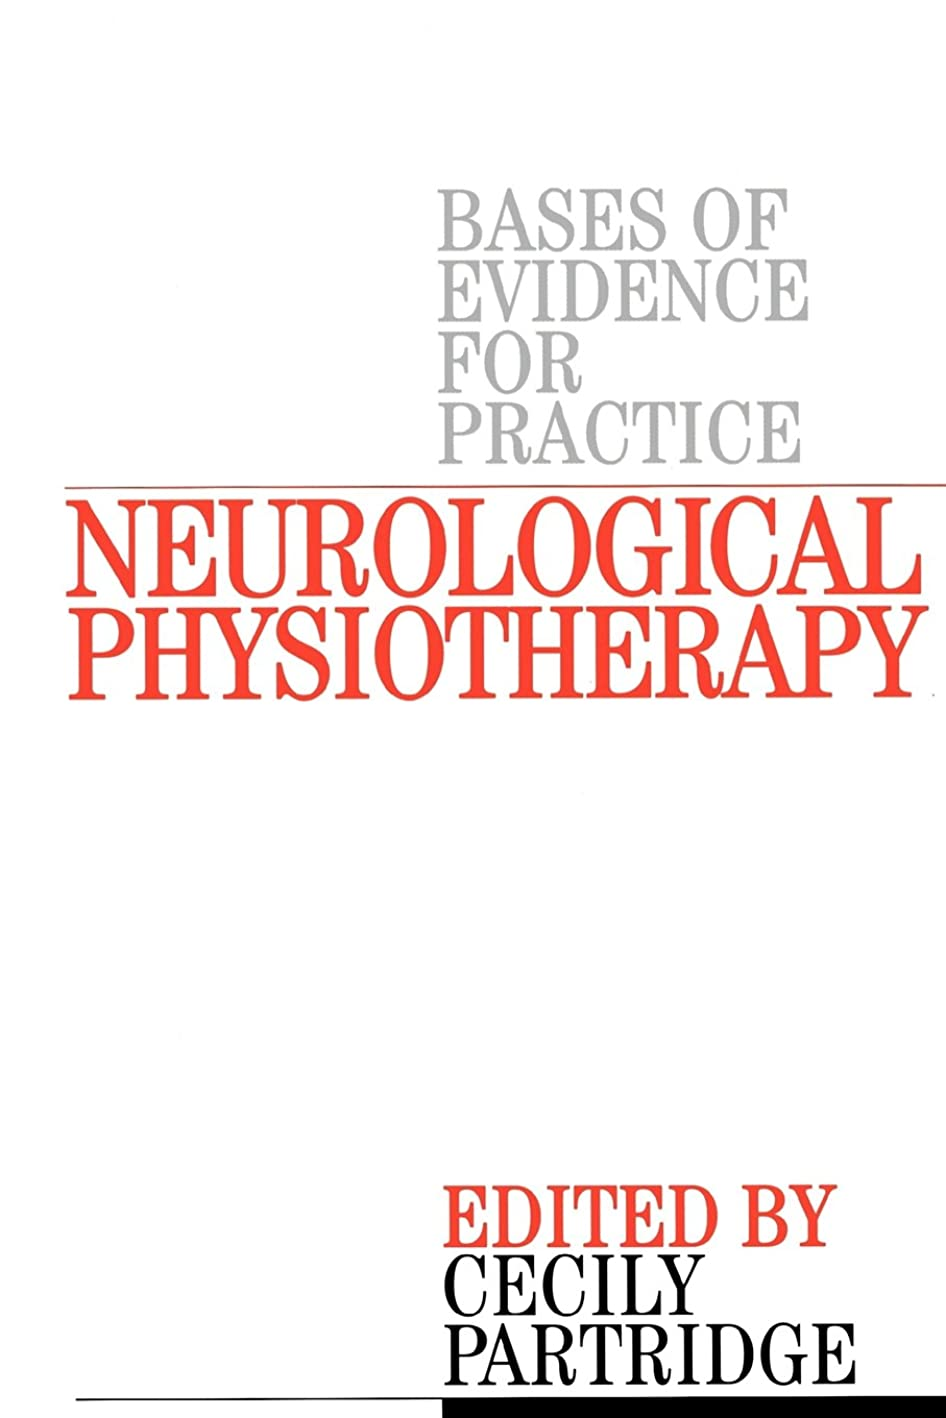 落ち着いて少ないこれらNeurological Physiotherapy: Evidence Based Case Reports